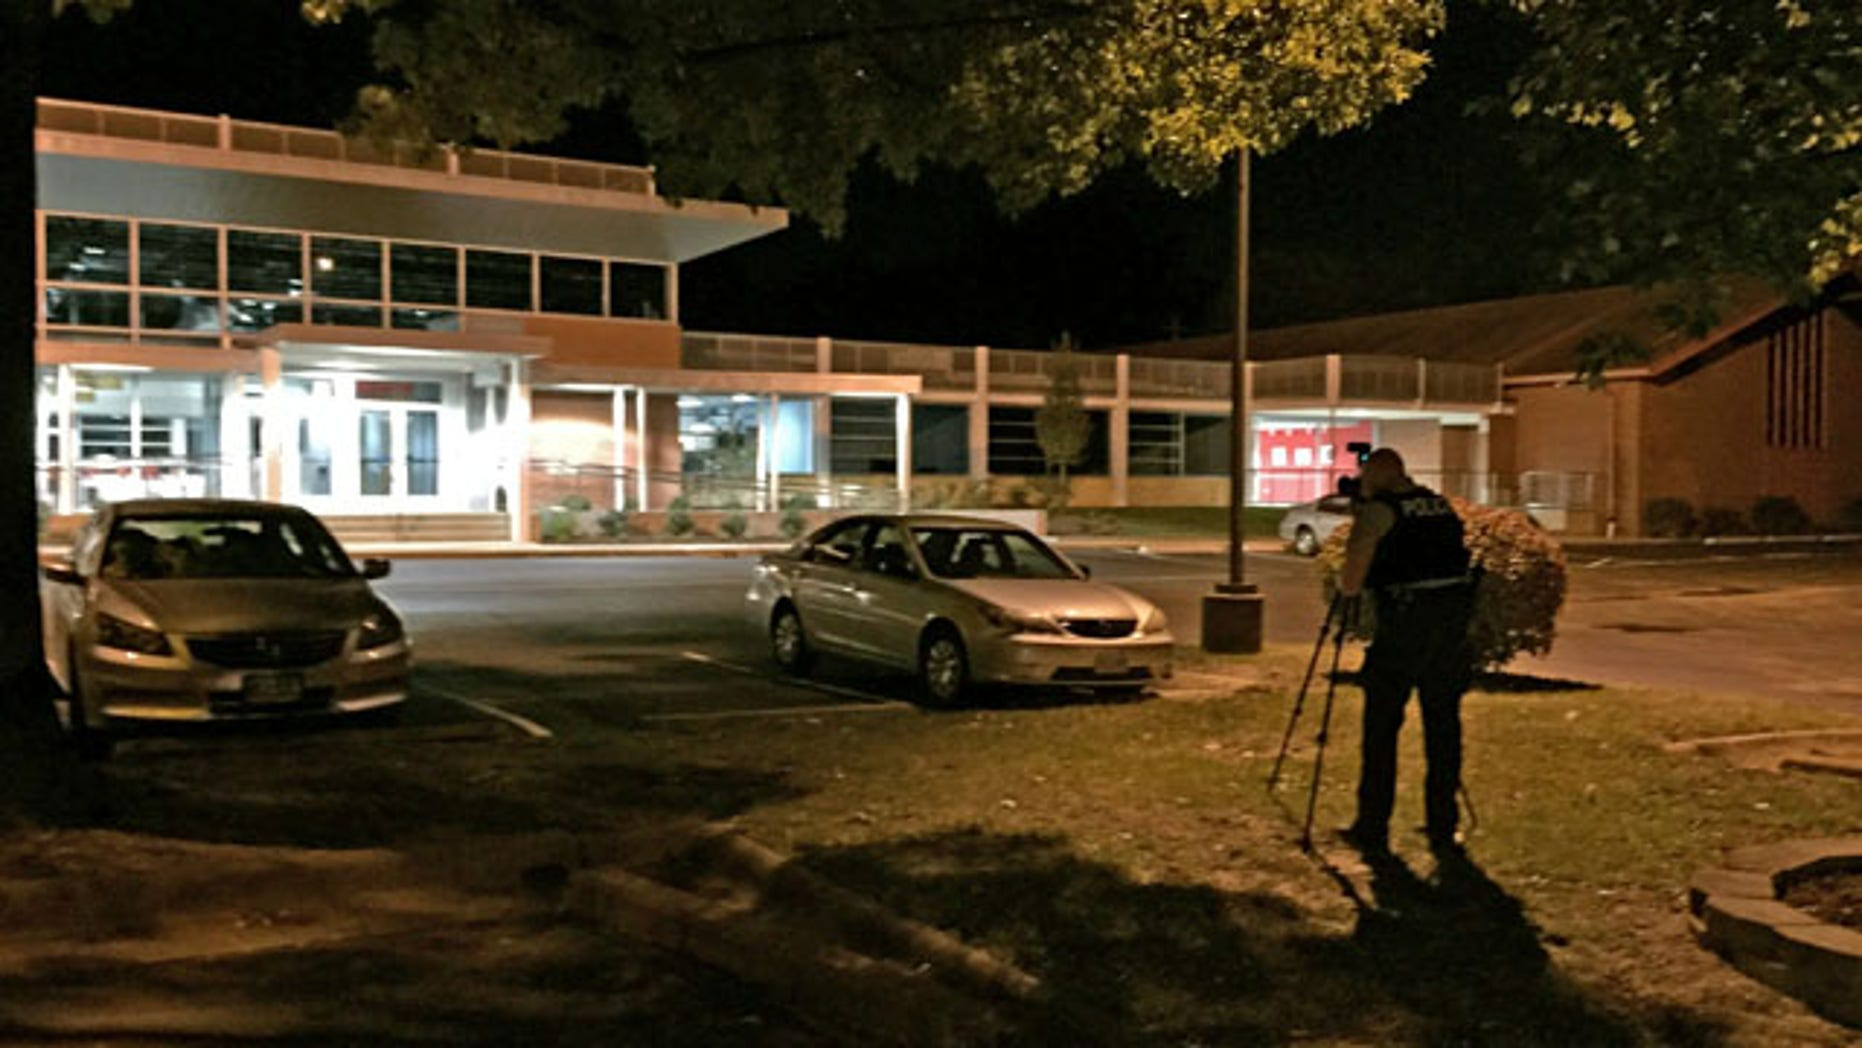 September 27, 2014: A police officer takes pictures outside the Ferguson Community Center in Ferguson, Mo. (AP Photo/St. Louis Post-Dispatch, Huy Mach).